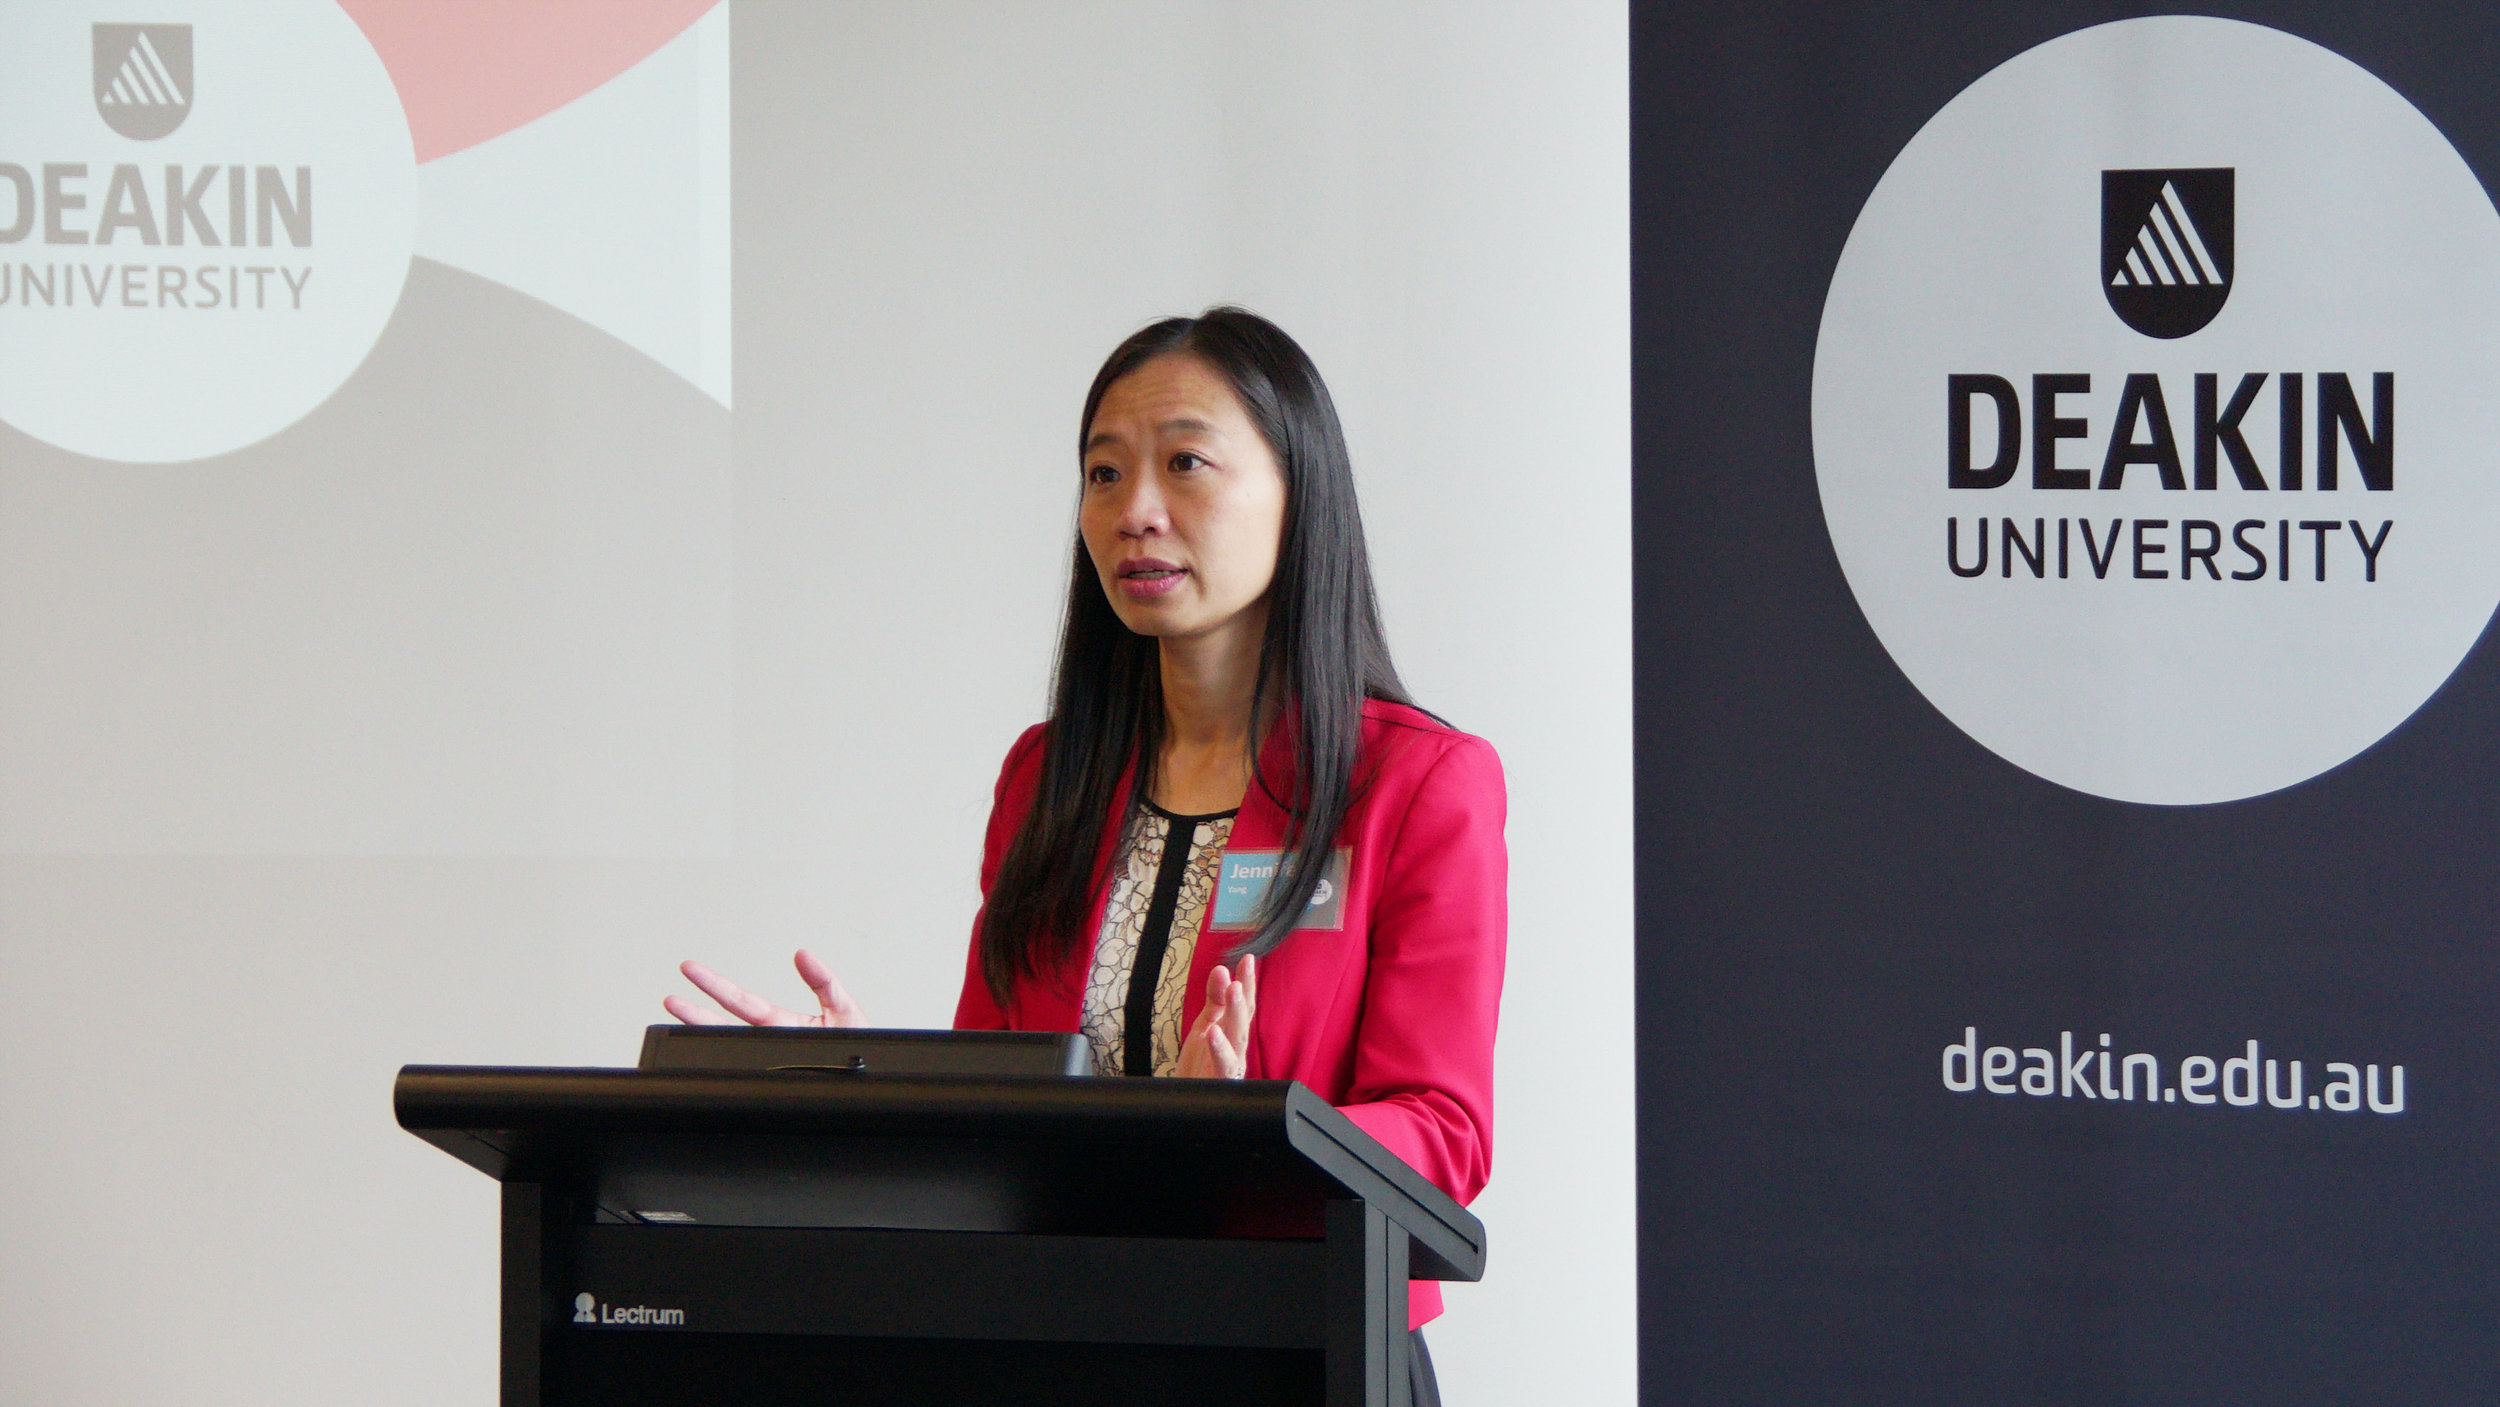 The Deakin Burwood campus sits in the Federal electorate of Chisholm, currently held by Independent MP Julia Banks, and being contested by ALP candidate Jennifer Yang (above).